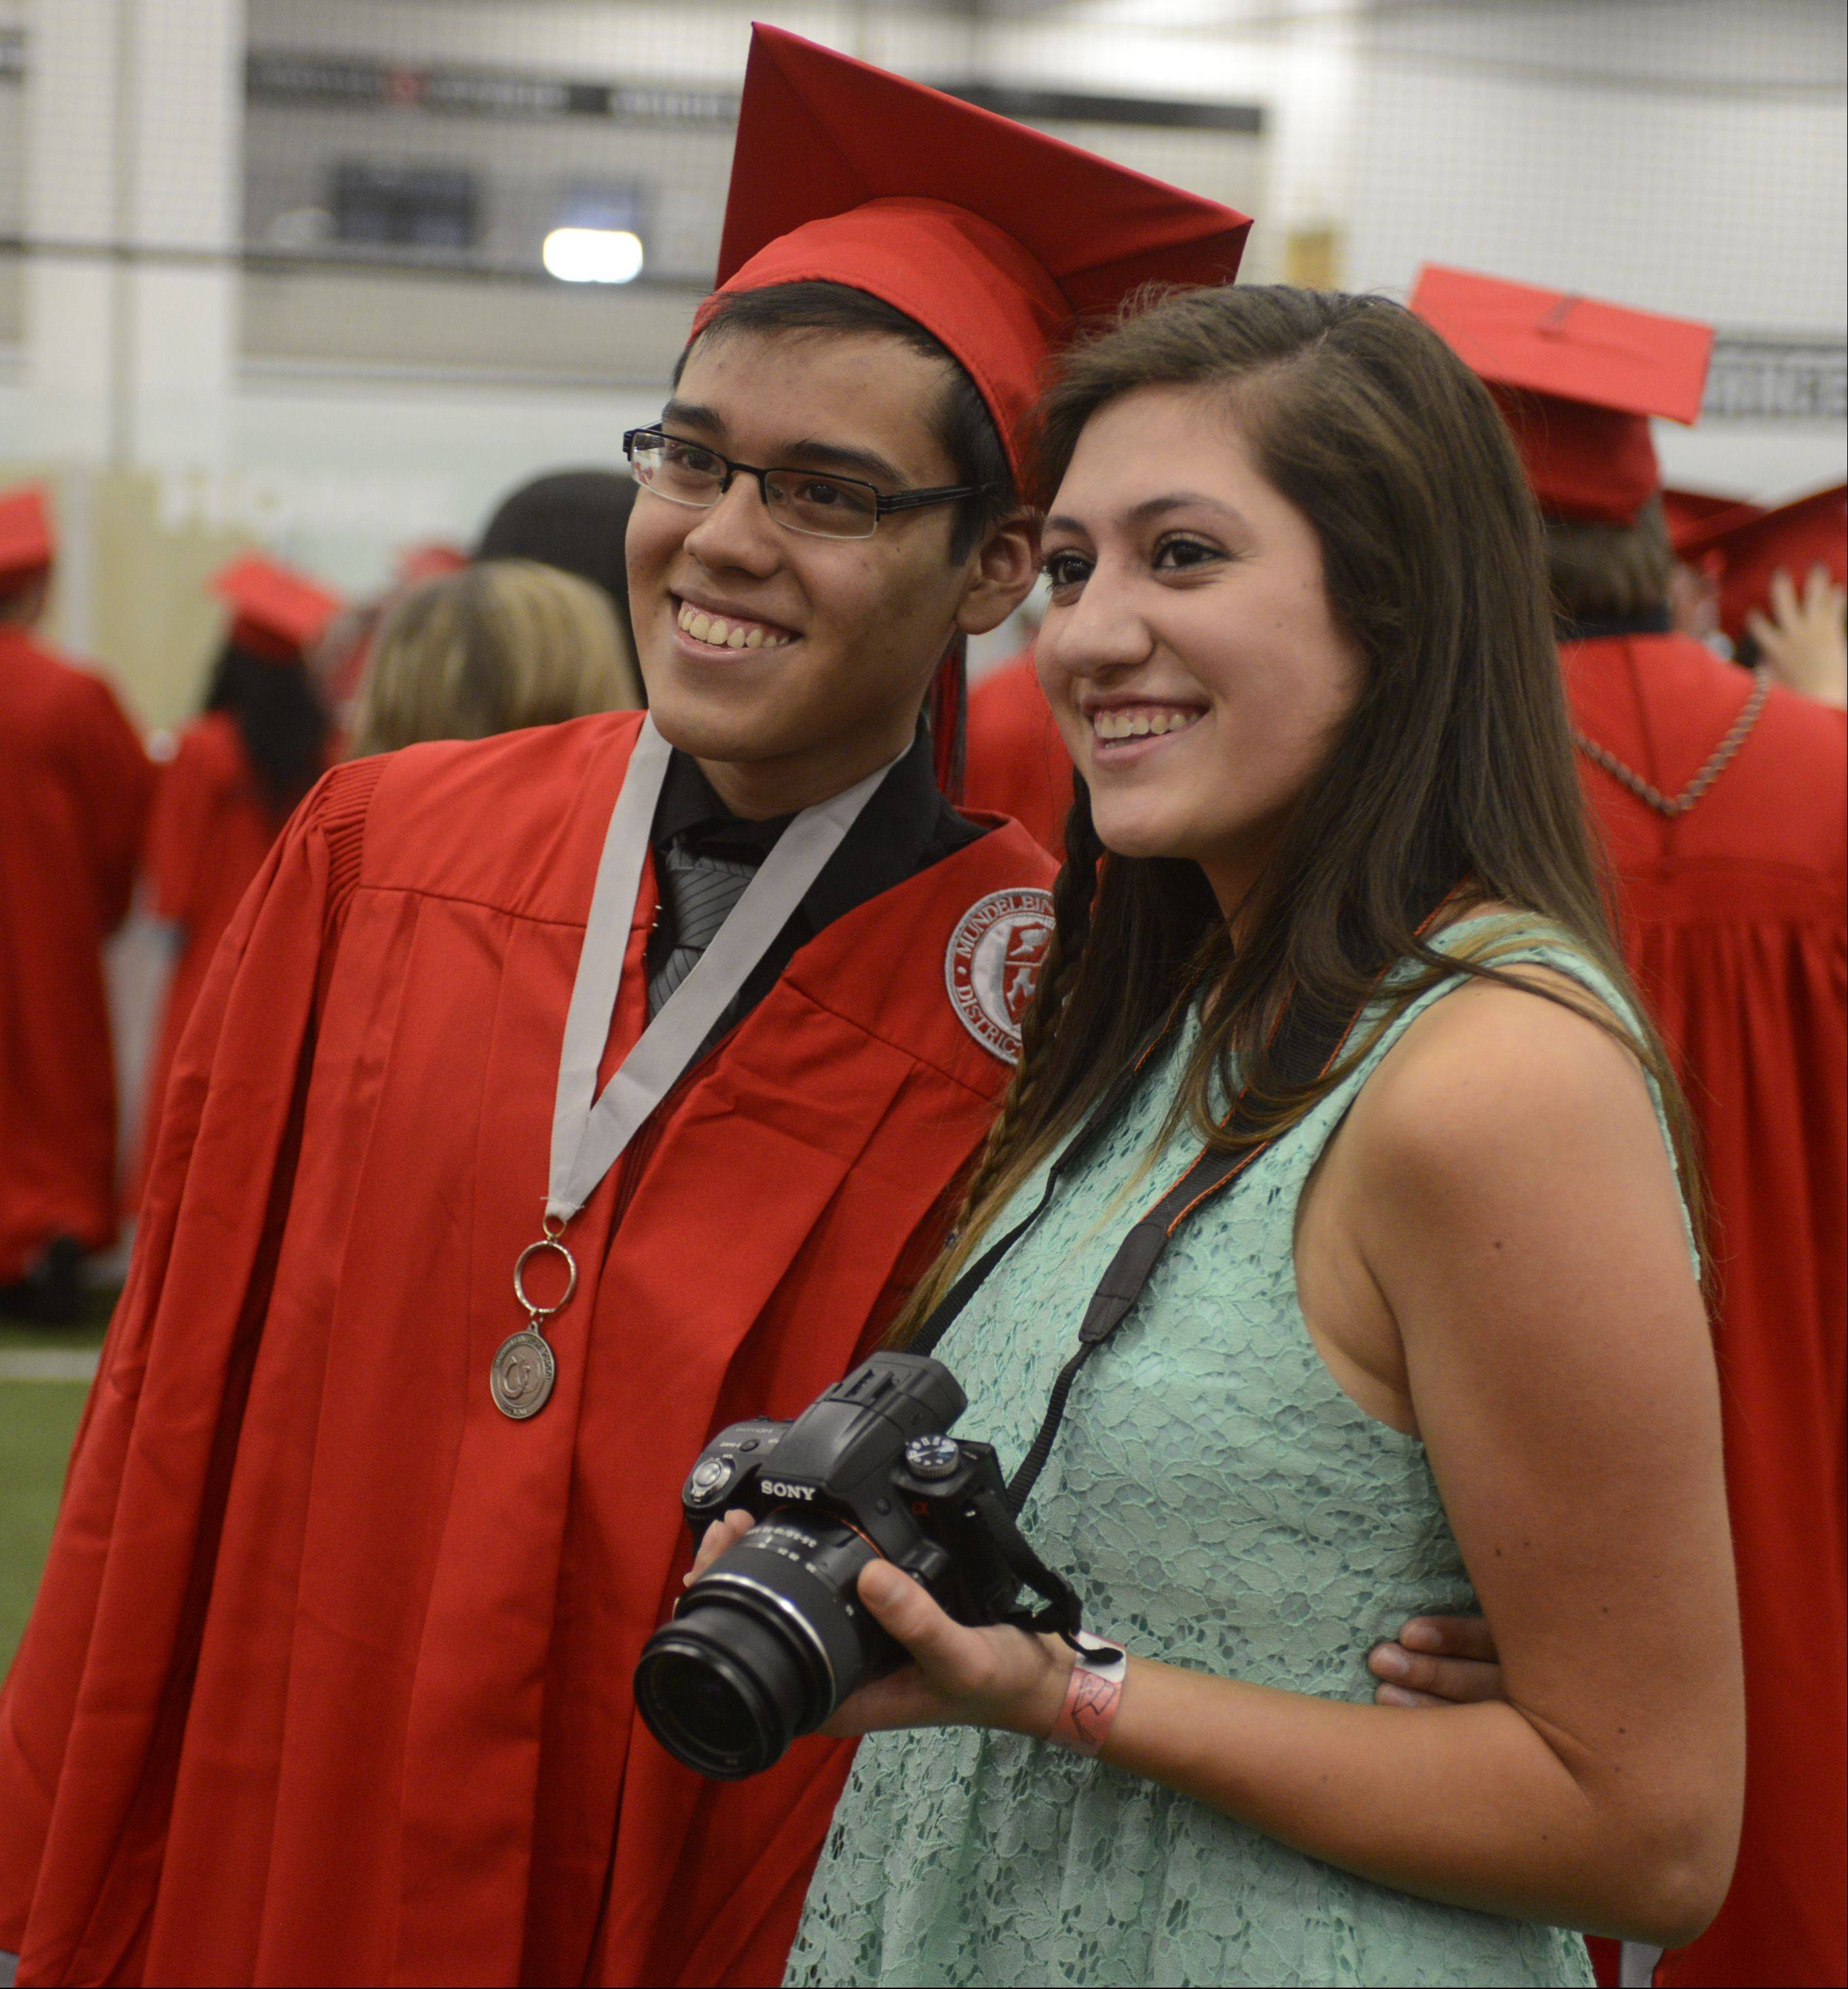 Images from the Mundelein High School graduation on Sunday, May 19 at the Libertyville Sports Complex.